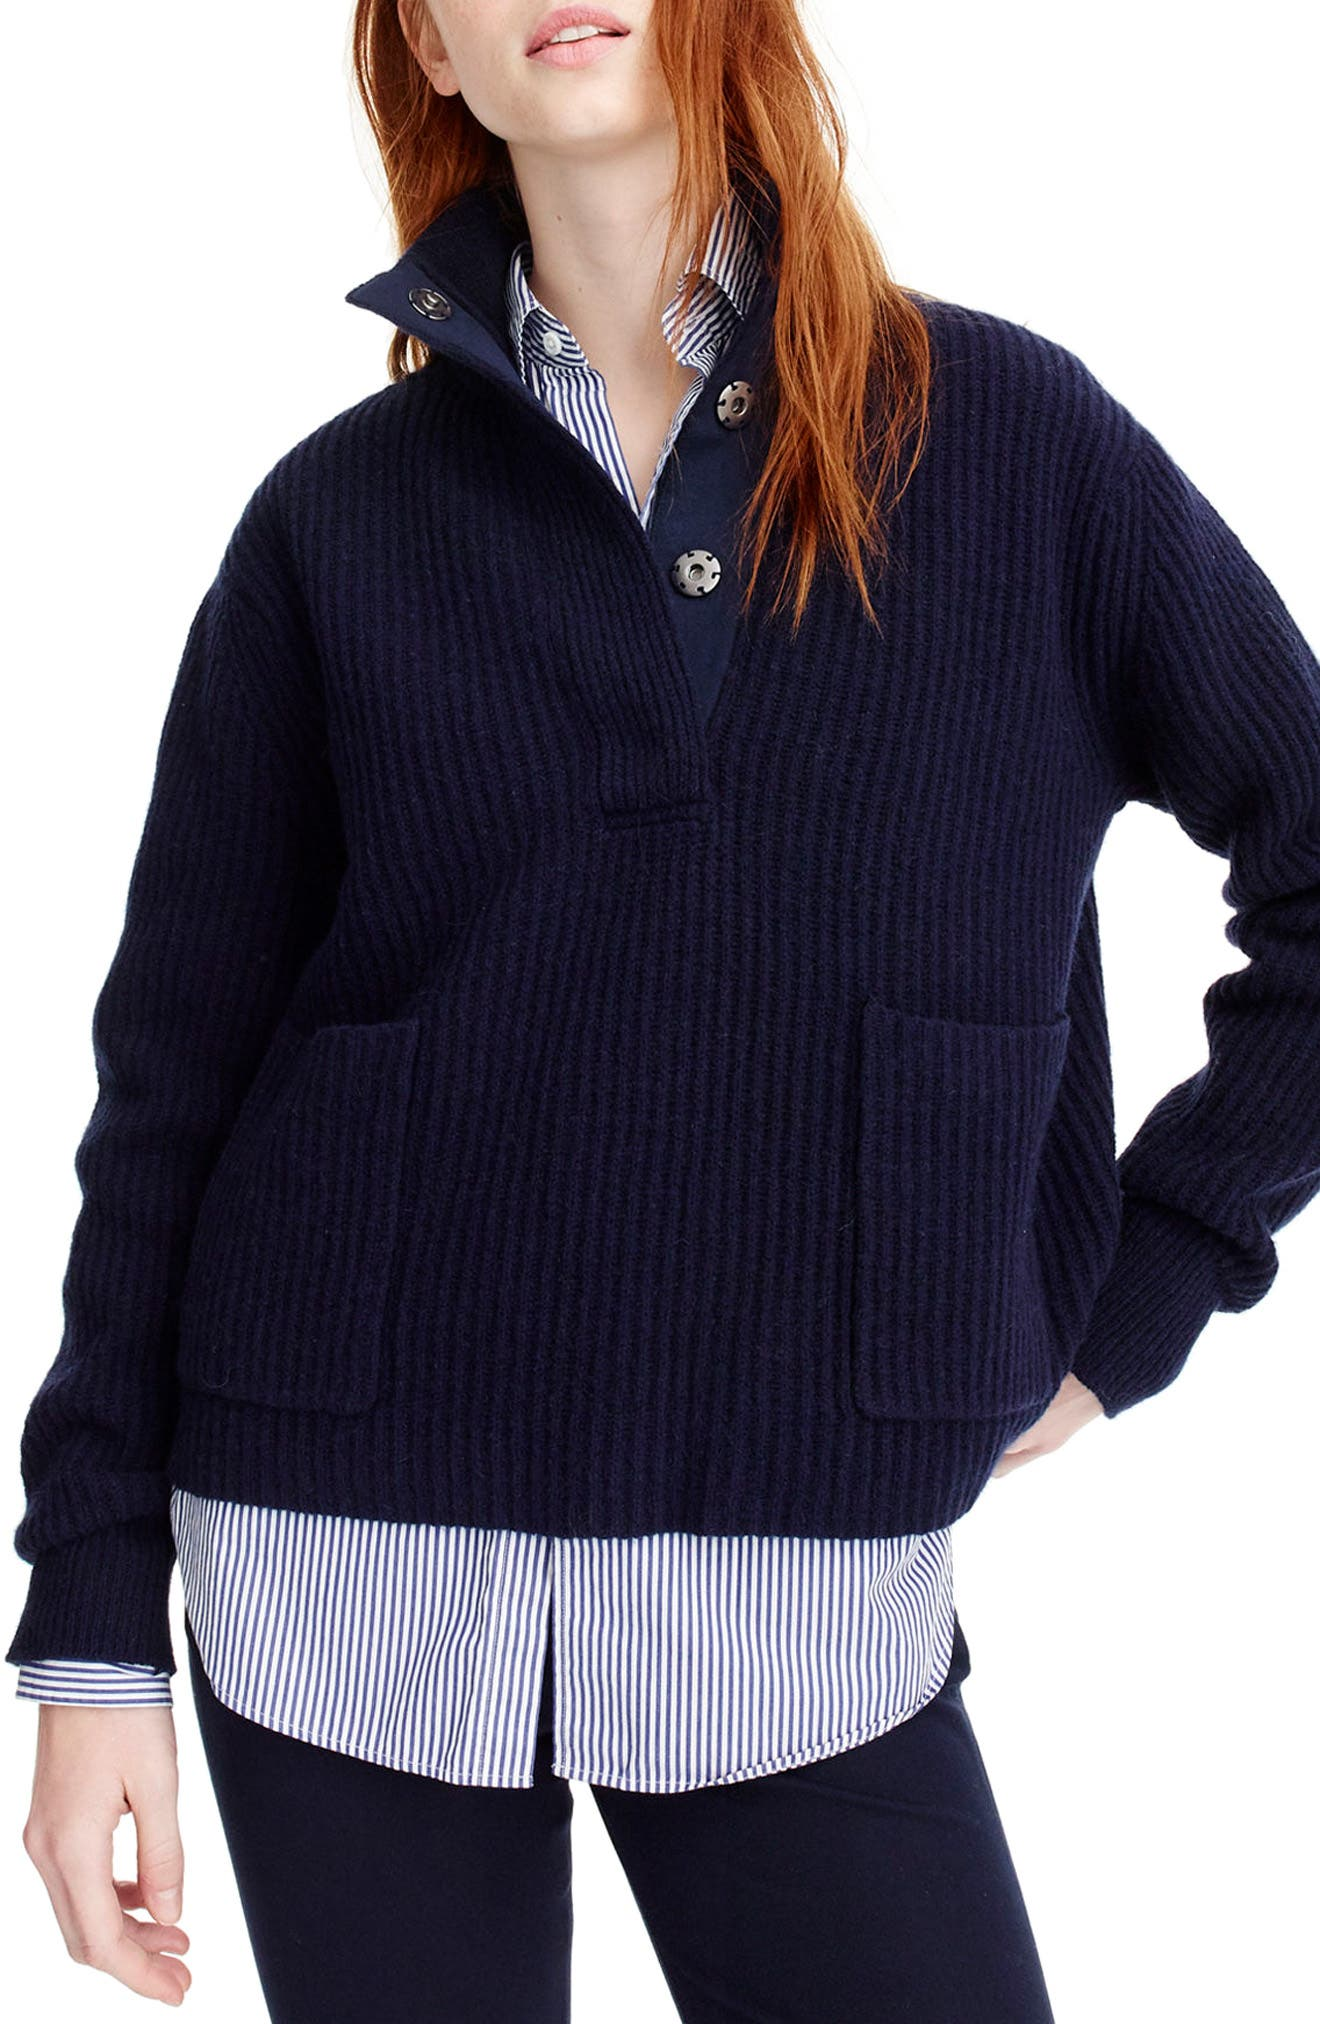 J.Crew Kay Lambswool Pullover Sweater